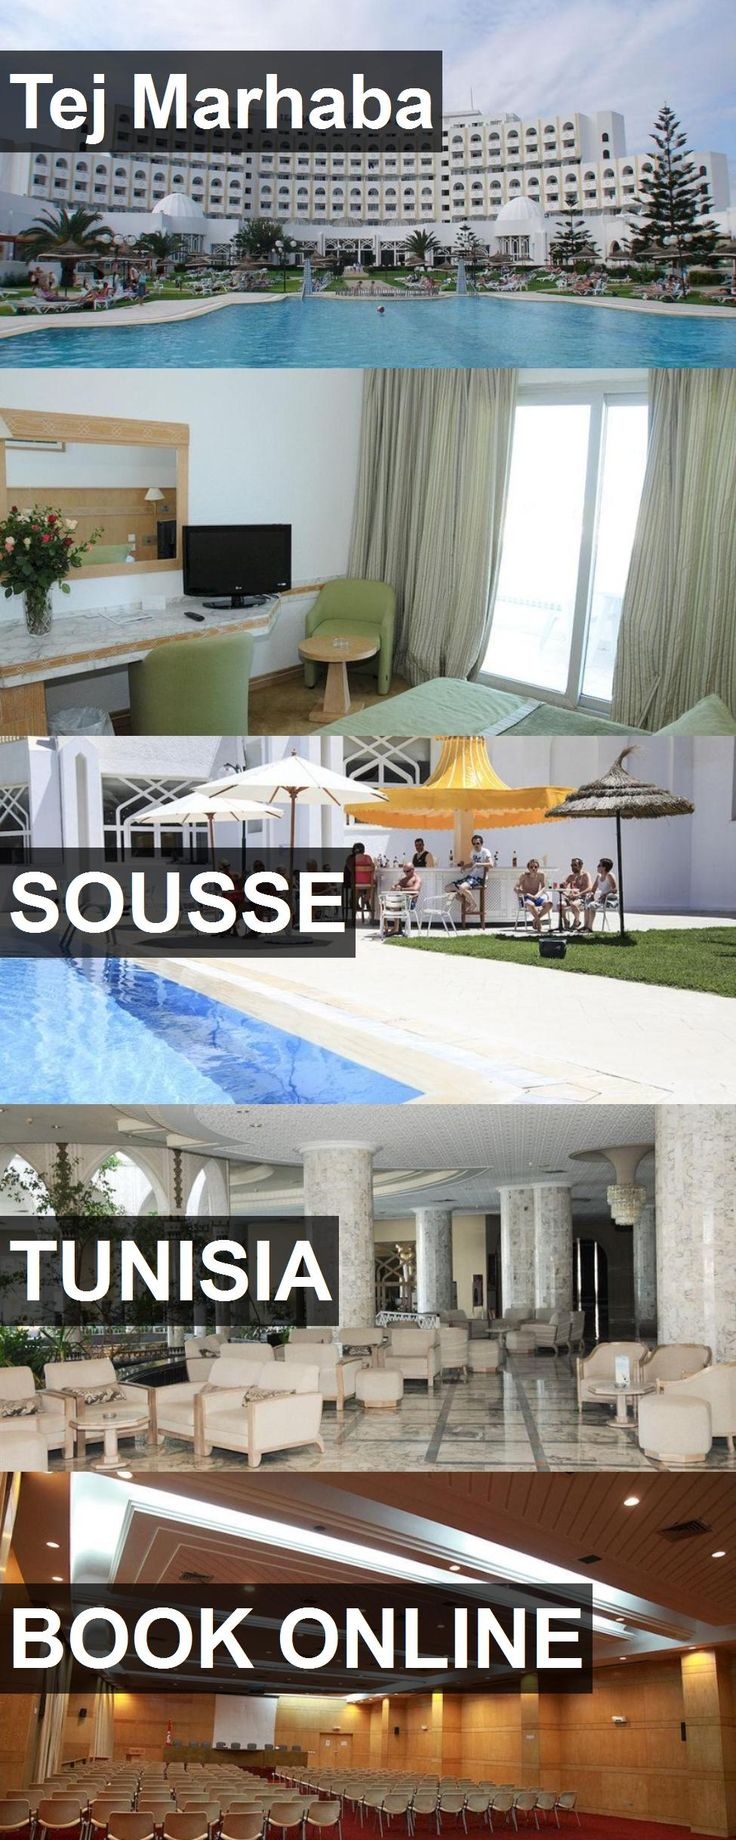 Hotel Tej Marhaba in Sousse, Tunisia. For more information, photos, reviews and best prices please follow the link. #Tunisia #Sousse #TejMarhaba #hotel #travel #vacation